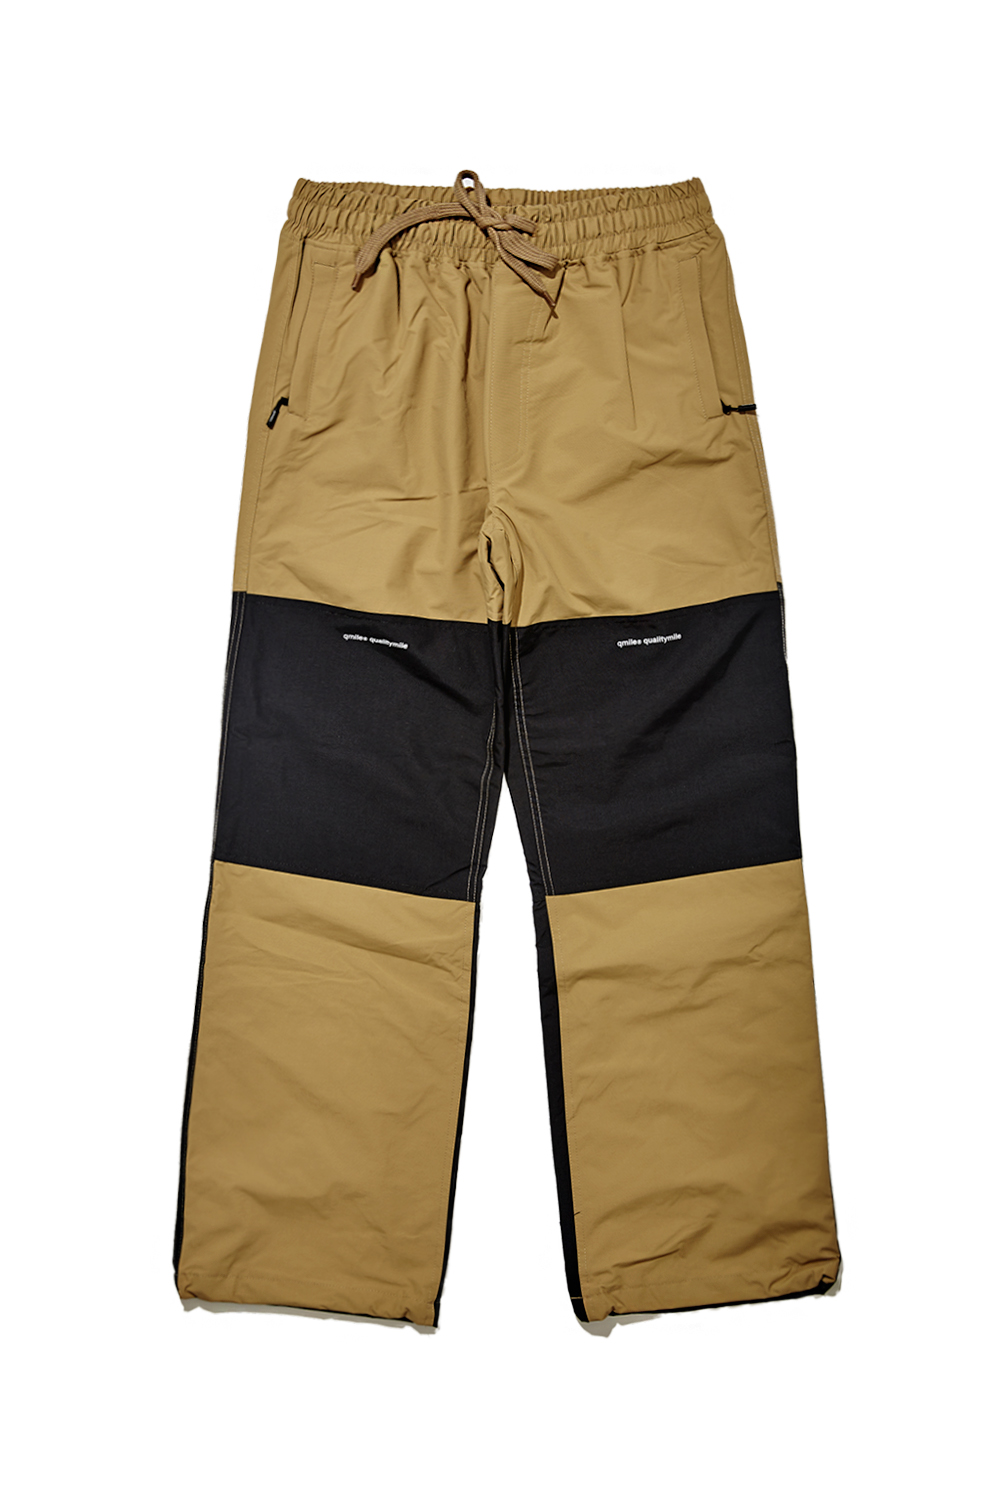 TRAINING PANTS | BEIGE